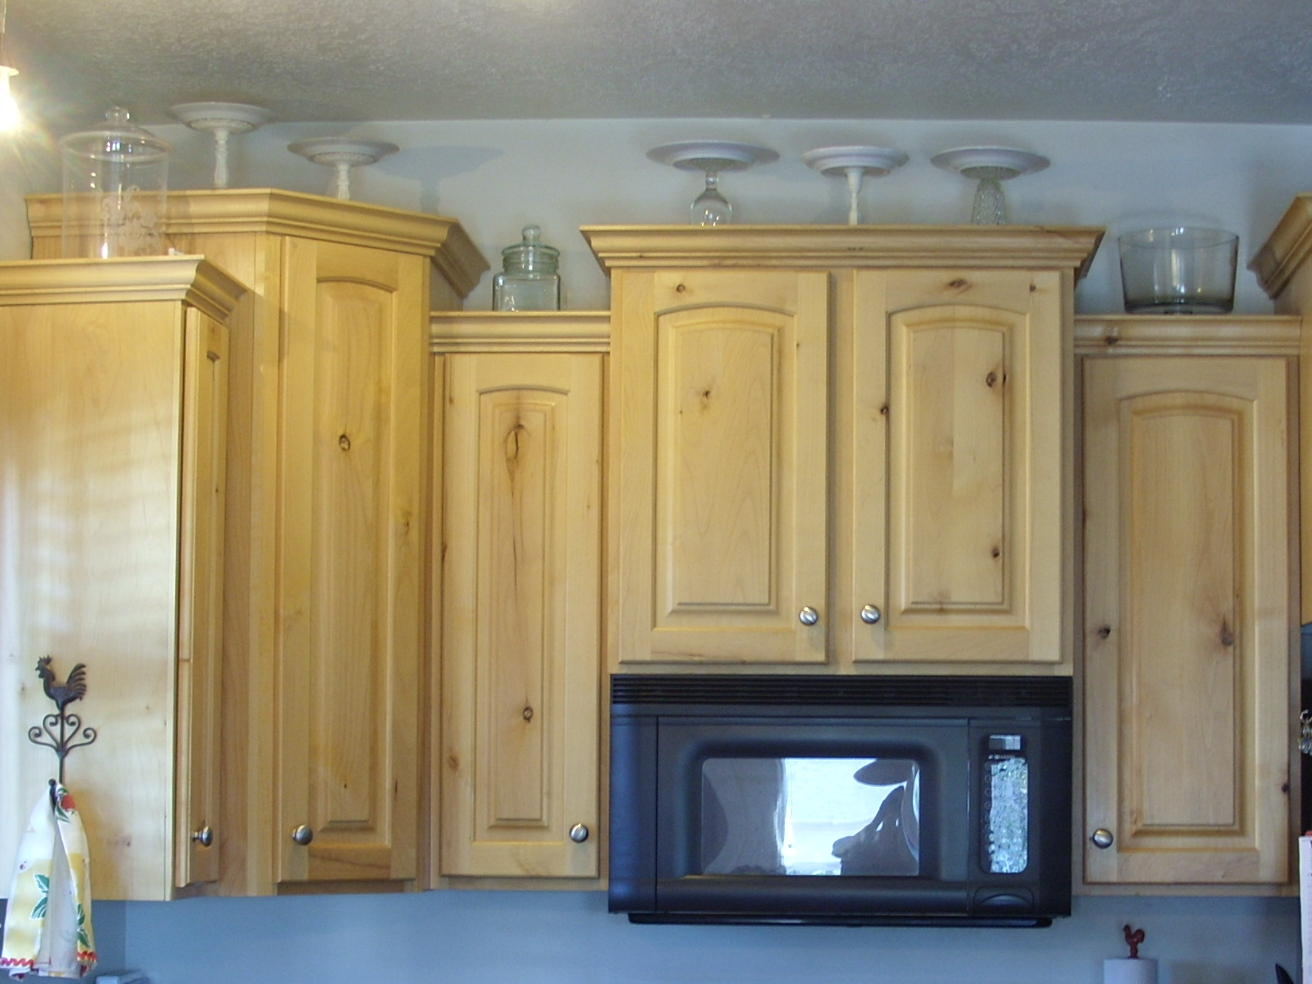 decorating the top of the kitchen cabinets - organize and decorate